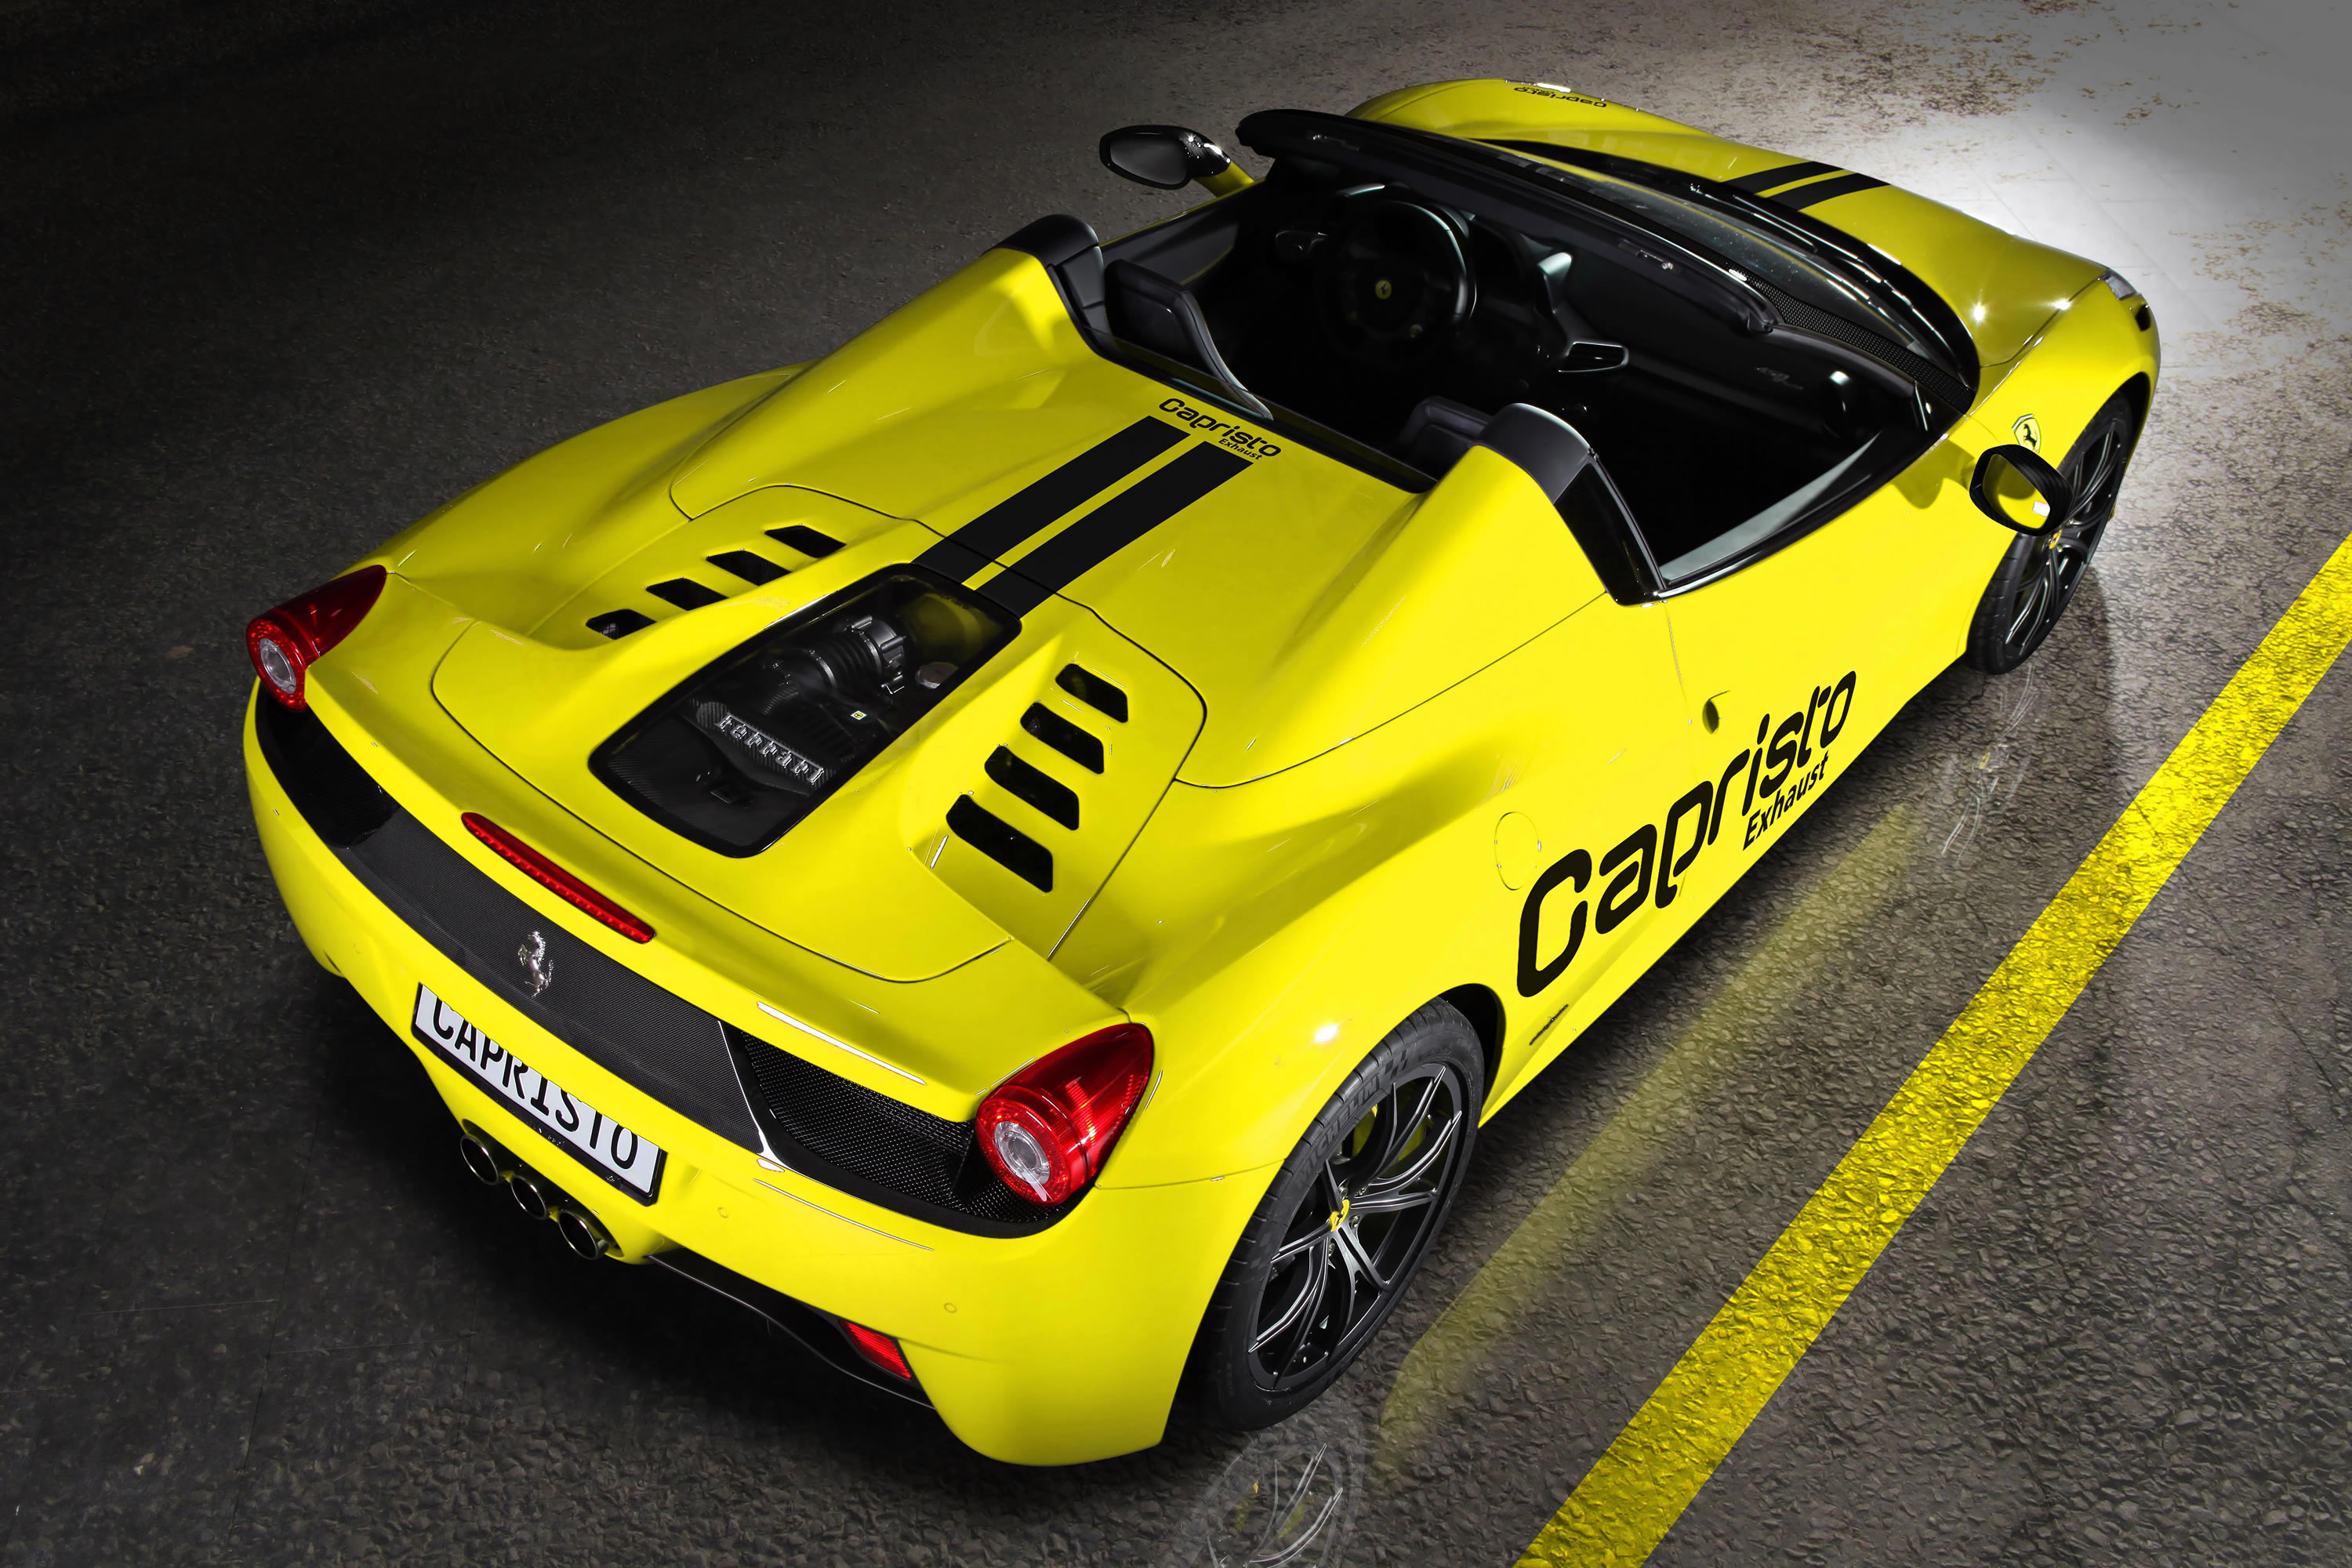 bright yellow ferrari 458 spider by capristo - Ferrari 2014 Yellow